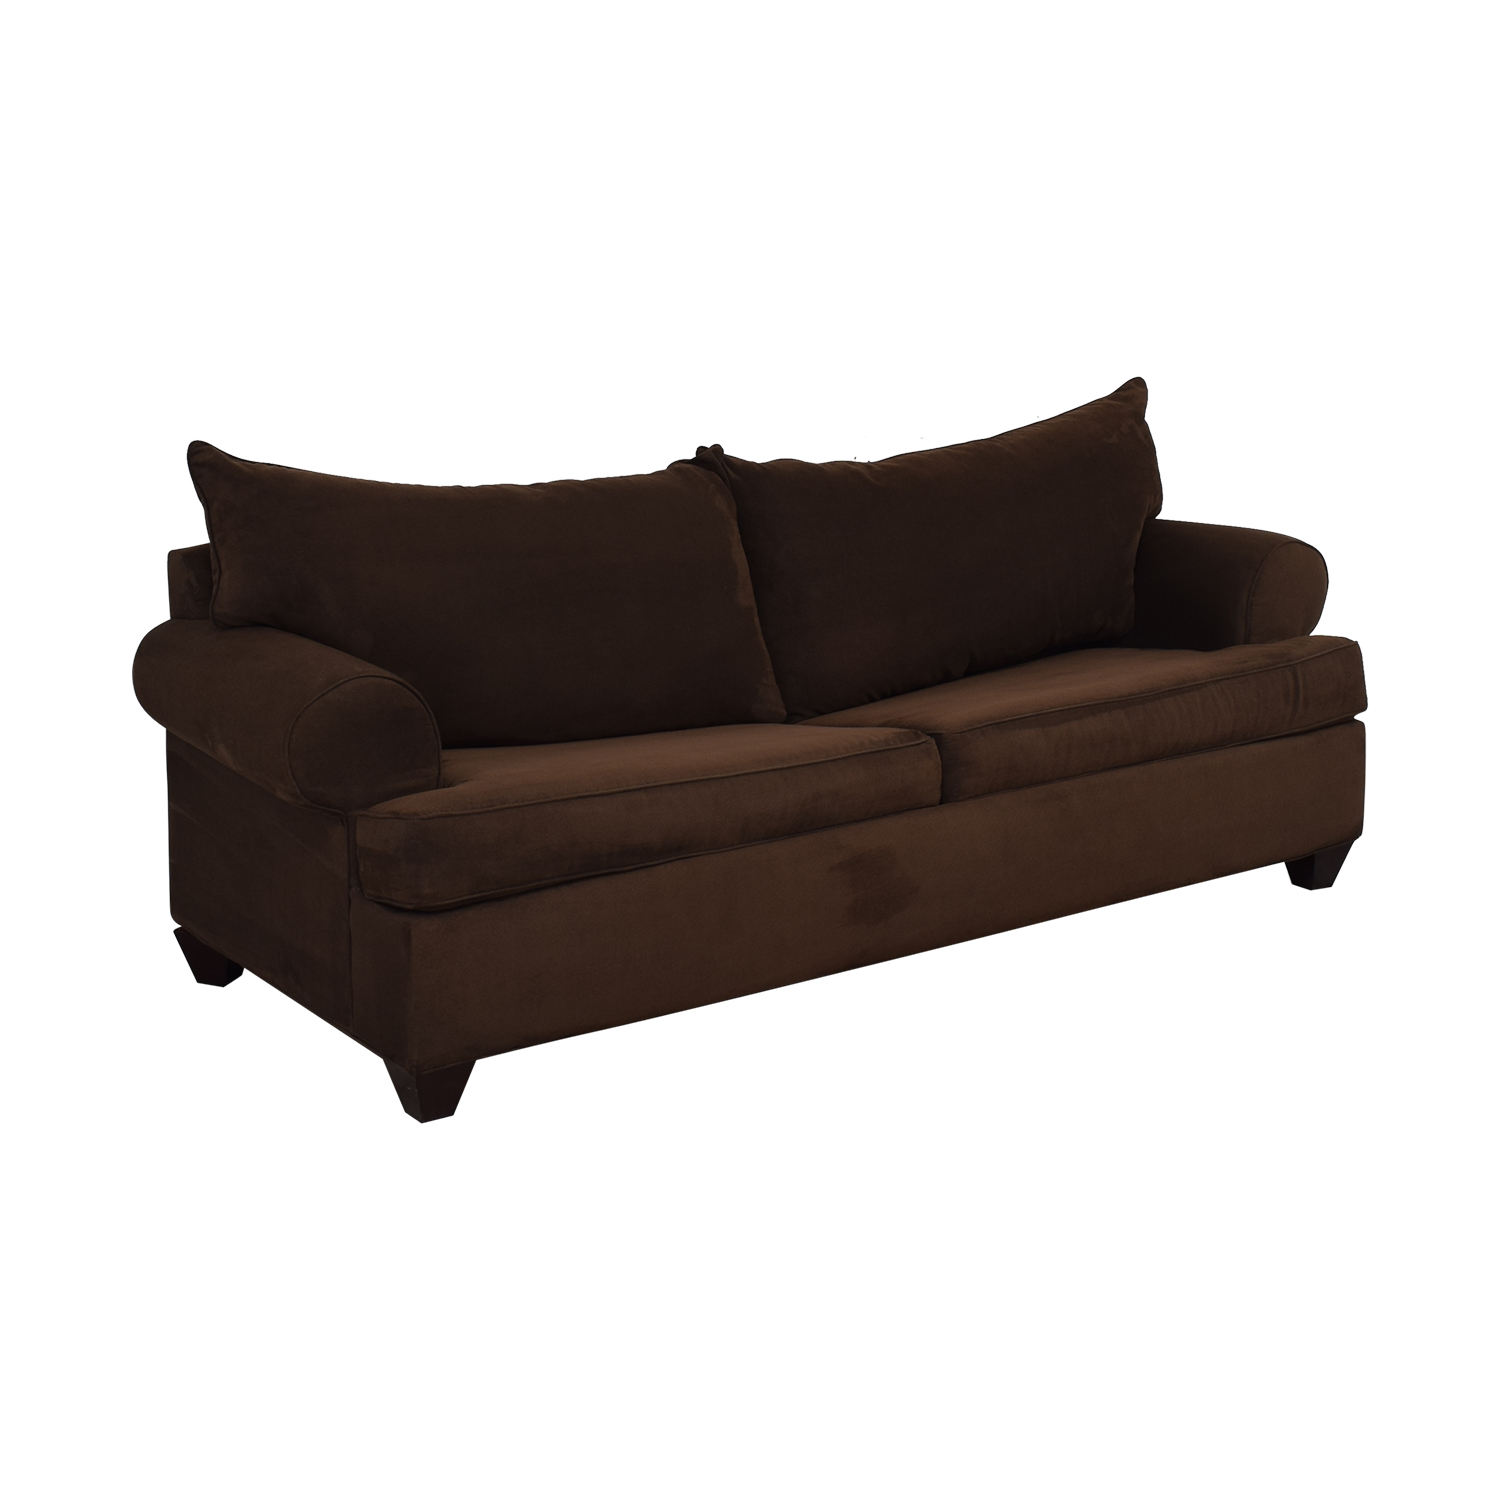 Raymour & Flanigan Raymour & Flanigan Two Cushion Sleeper Sofa